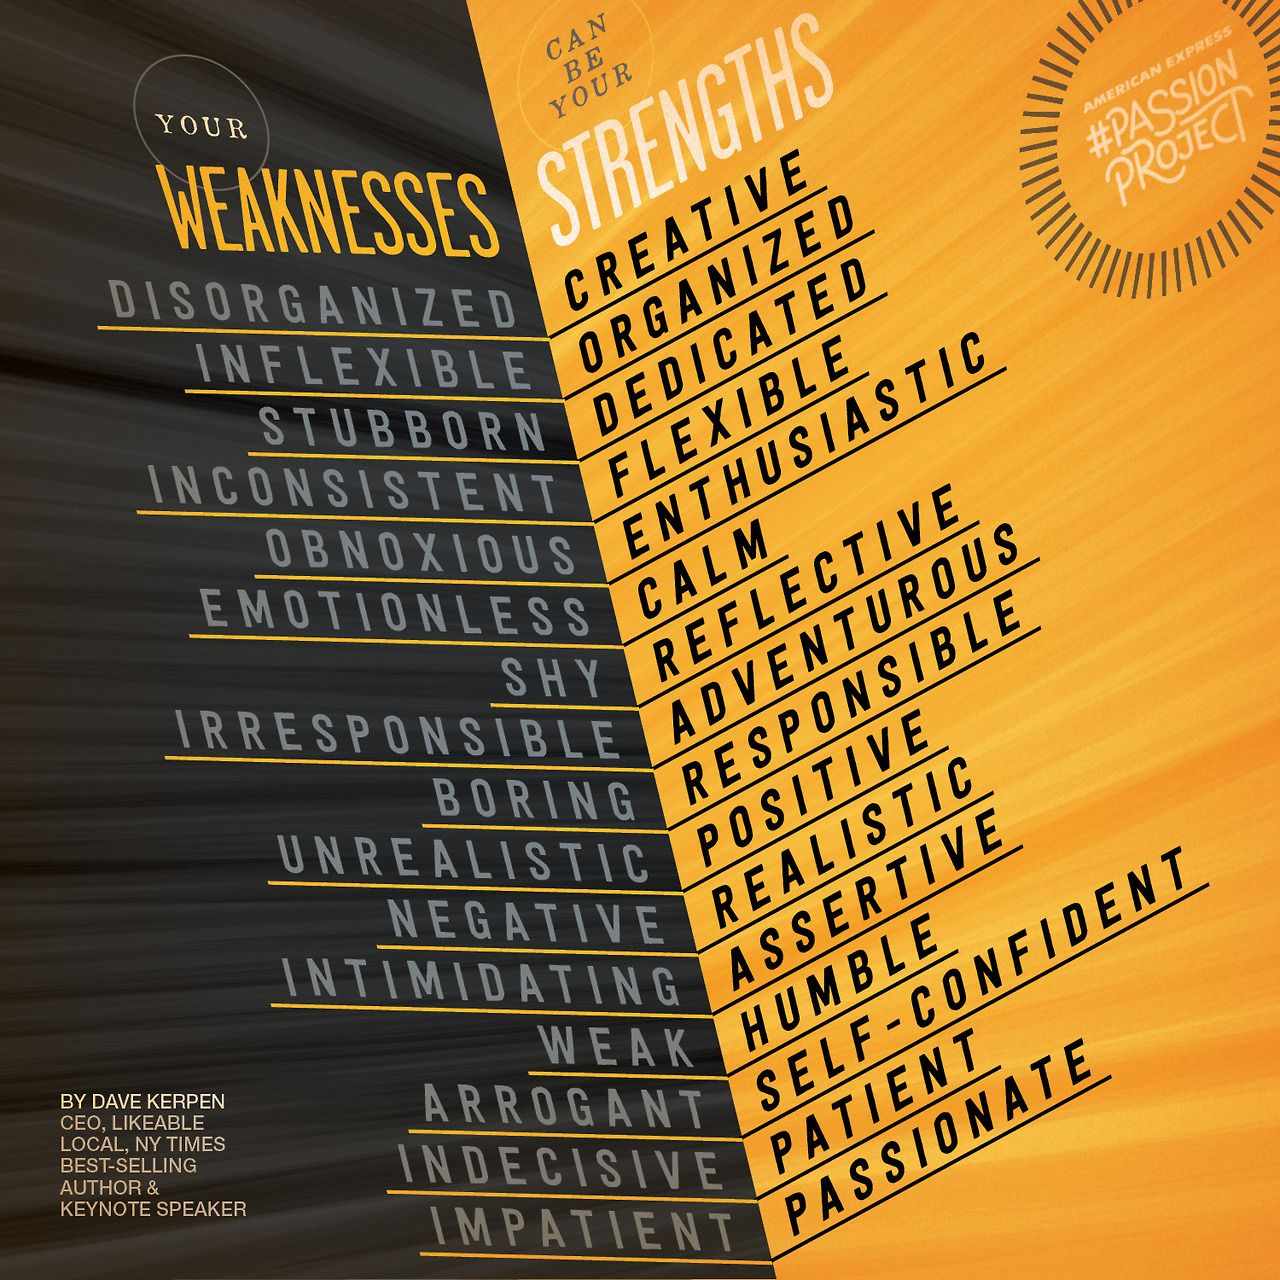 16 Weaknesses To Turn Into Strengths Every Weakness Has A